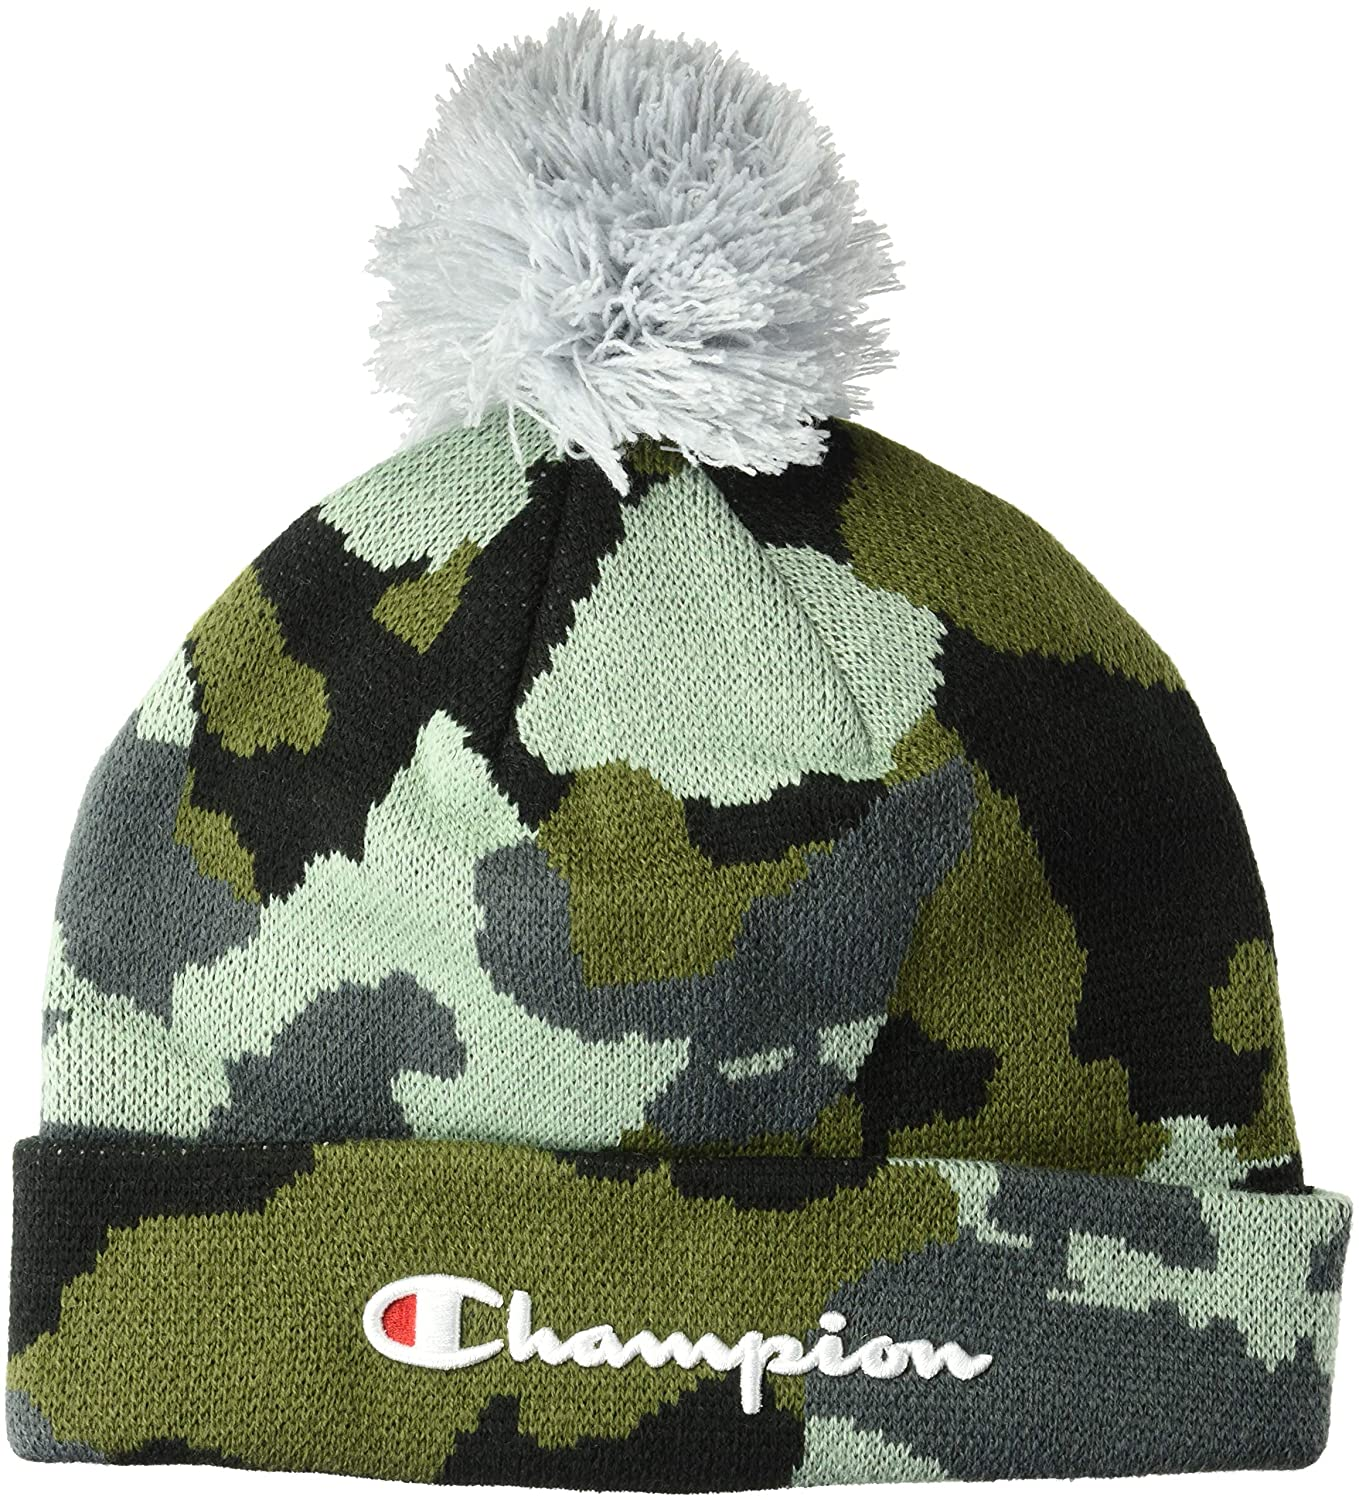 3476228c280c1 Amazon.com  Champion LIFE Men s Script Knit POM